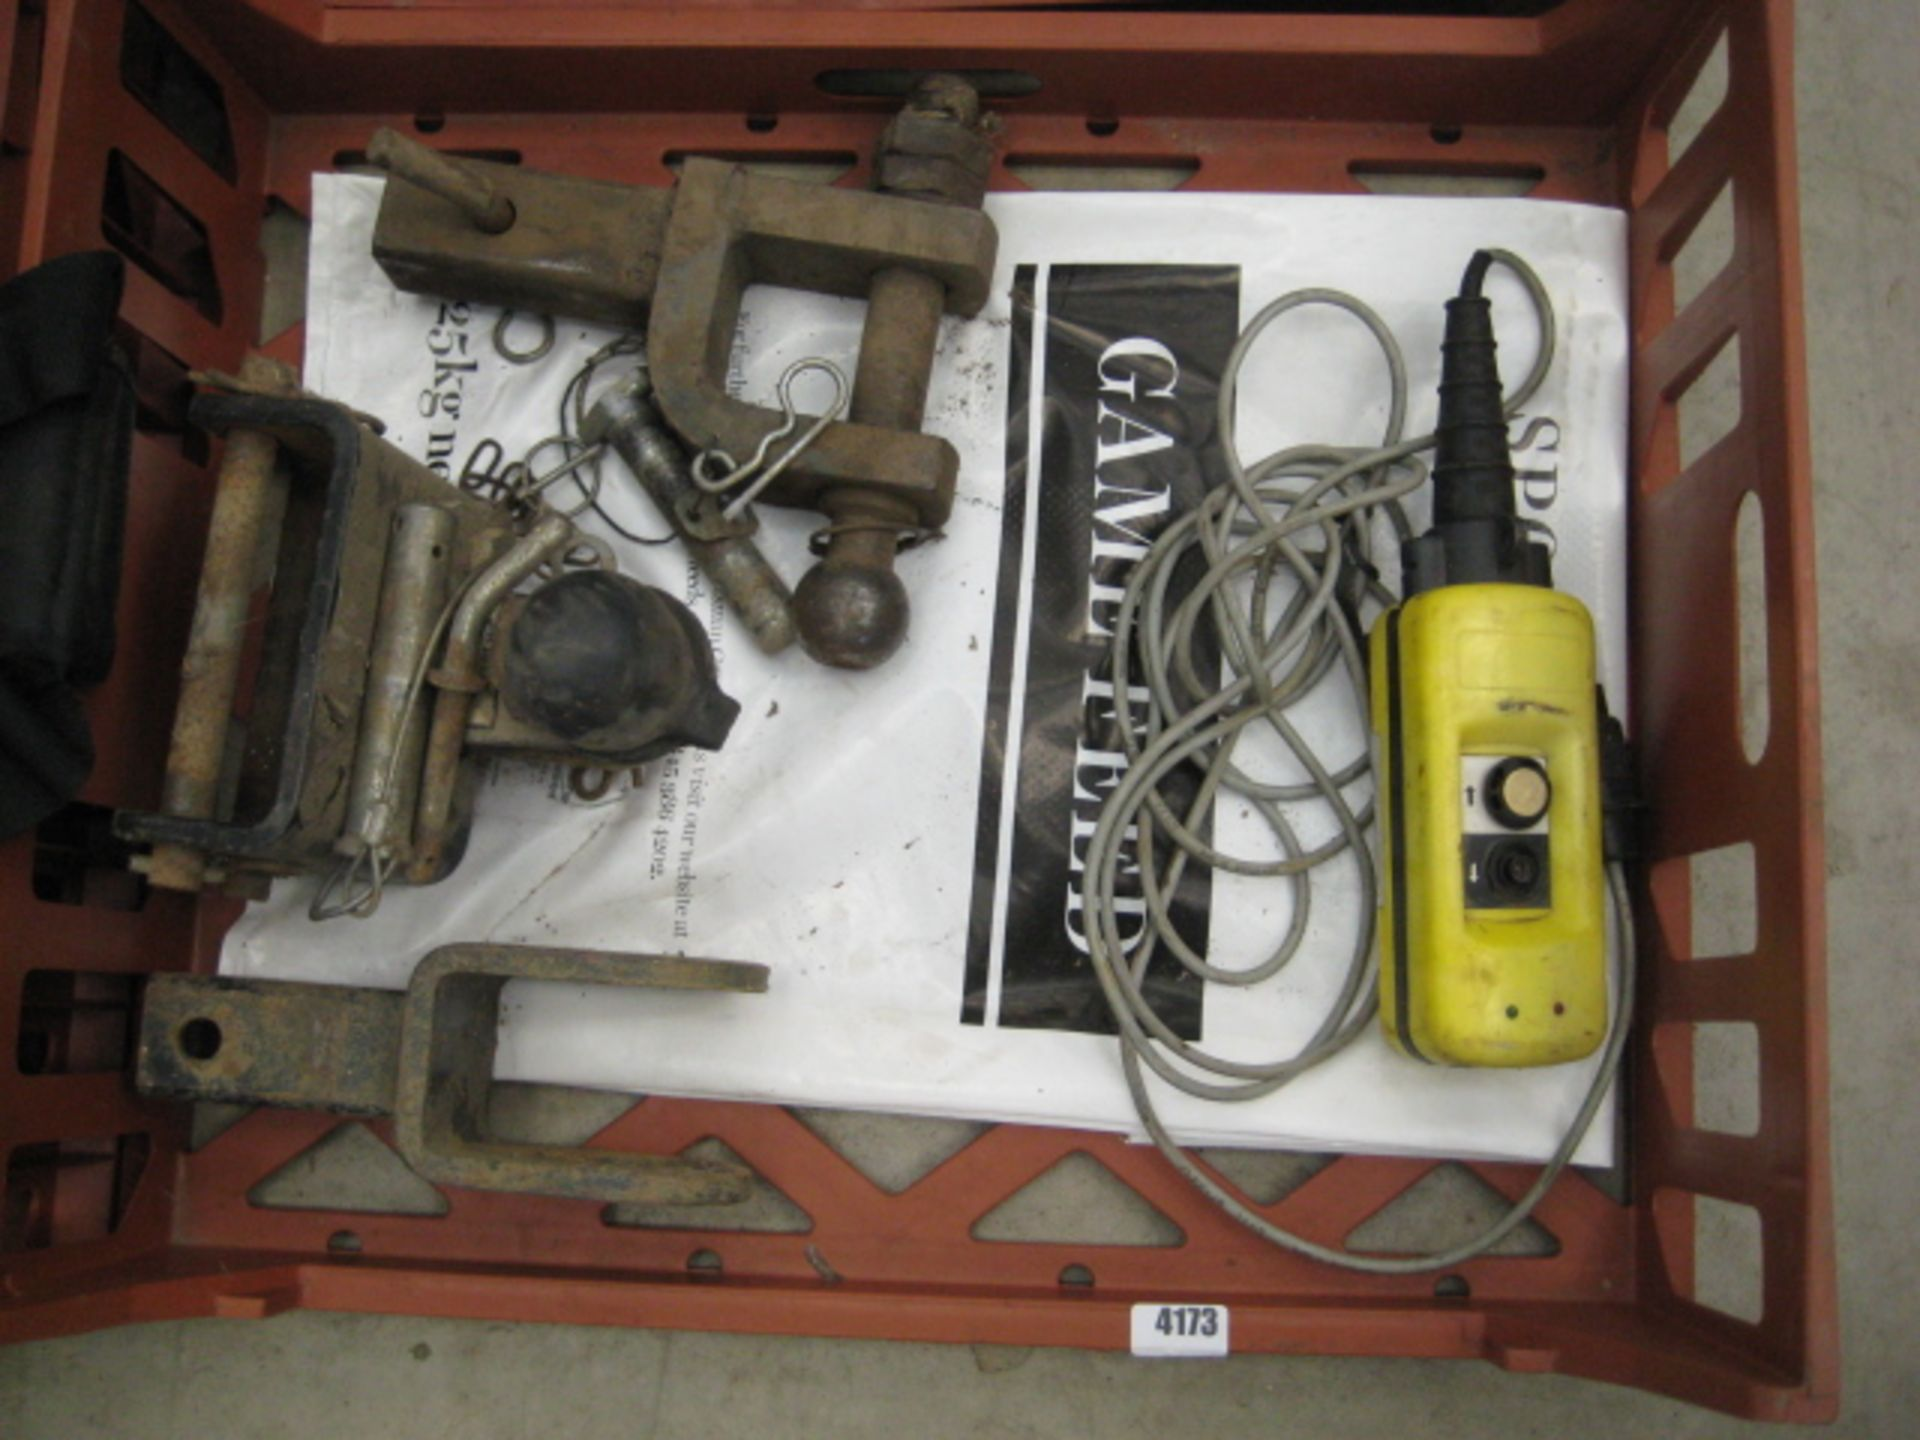 Lot 4173 - 3 tow hitches and winch control unit